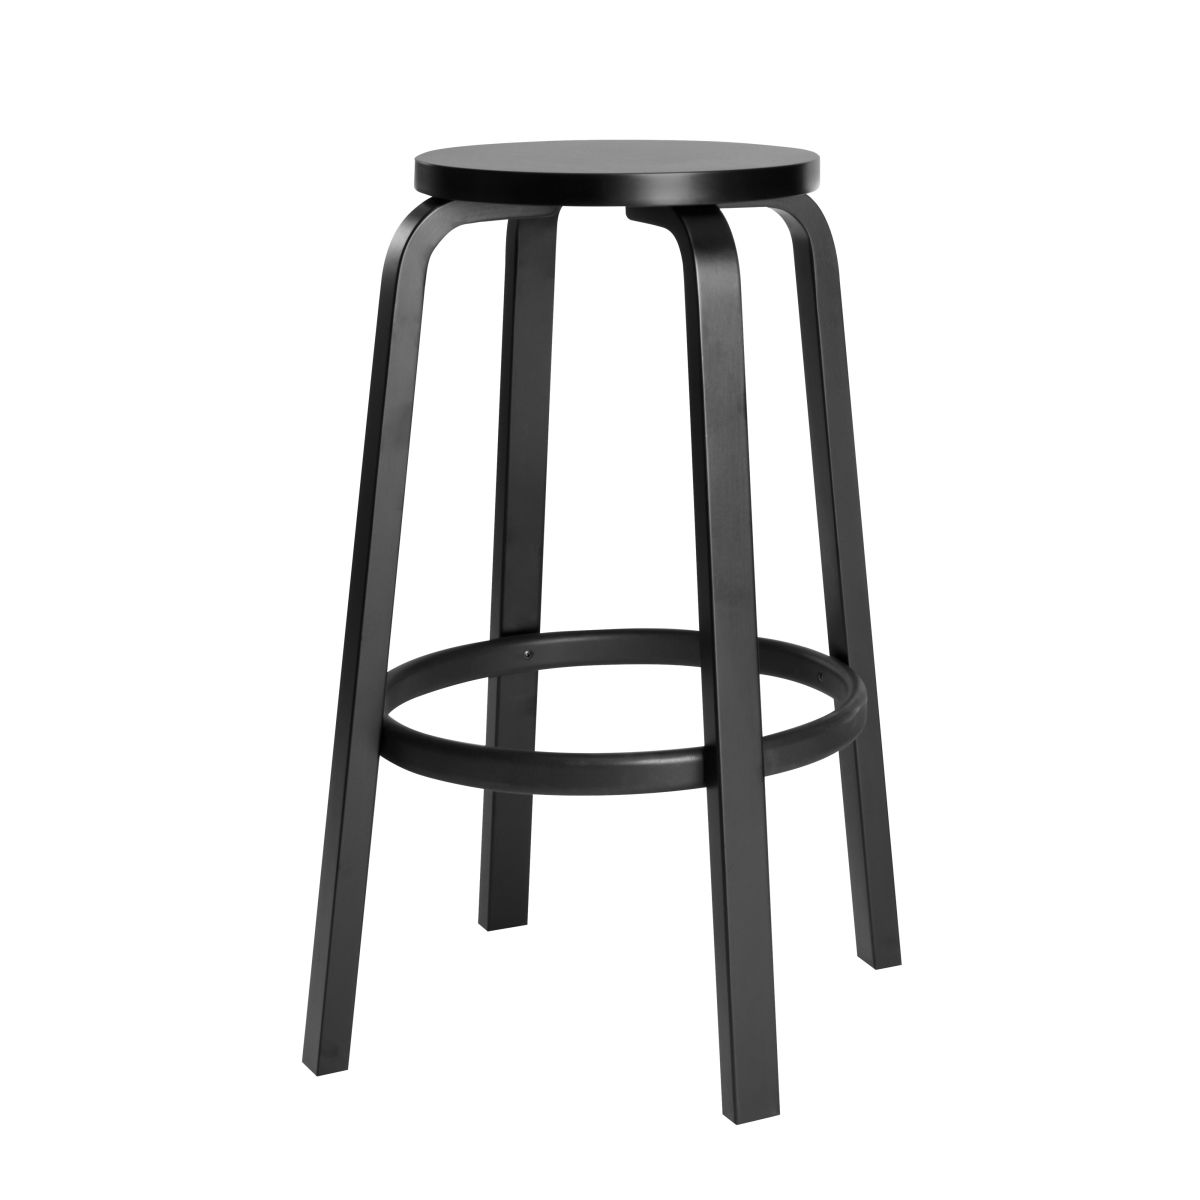 Bar-Stool-64-Black-Lacquer_Cut_Out-1974338